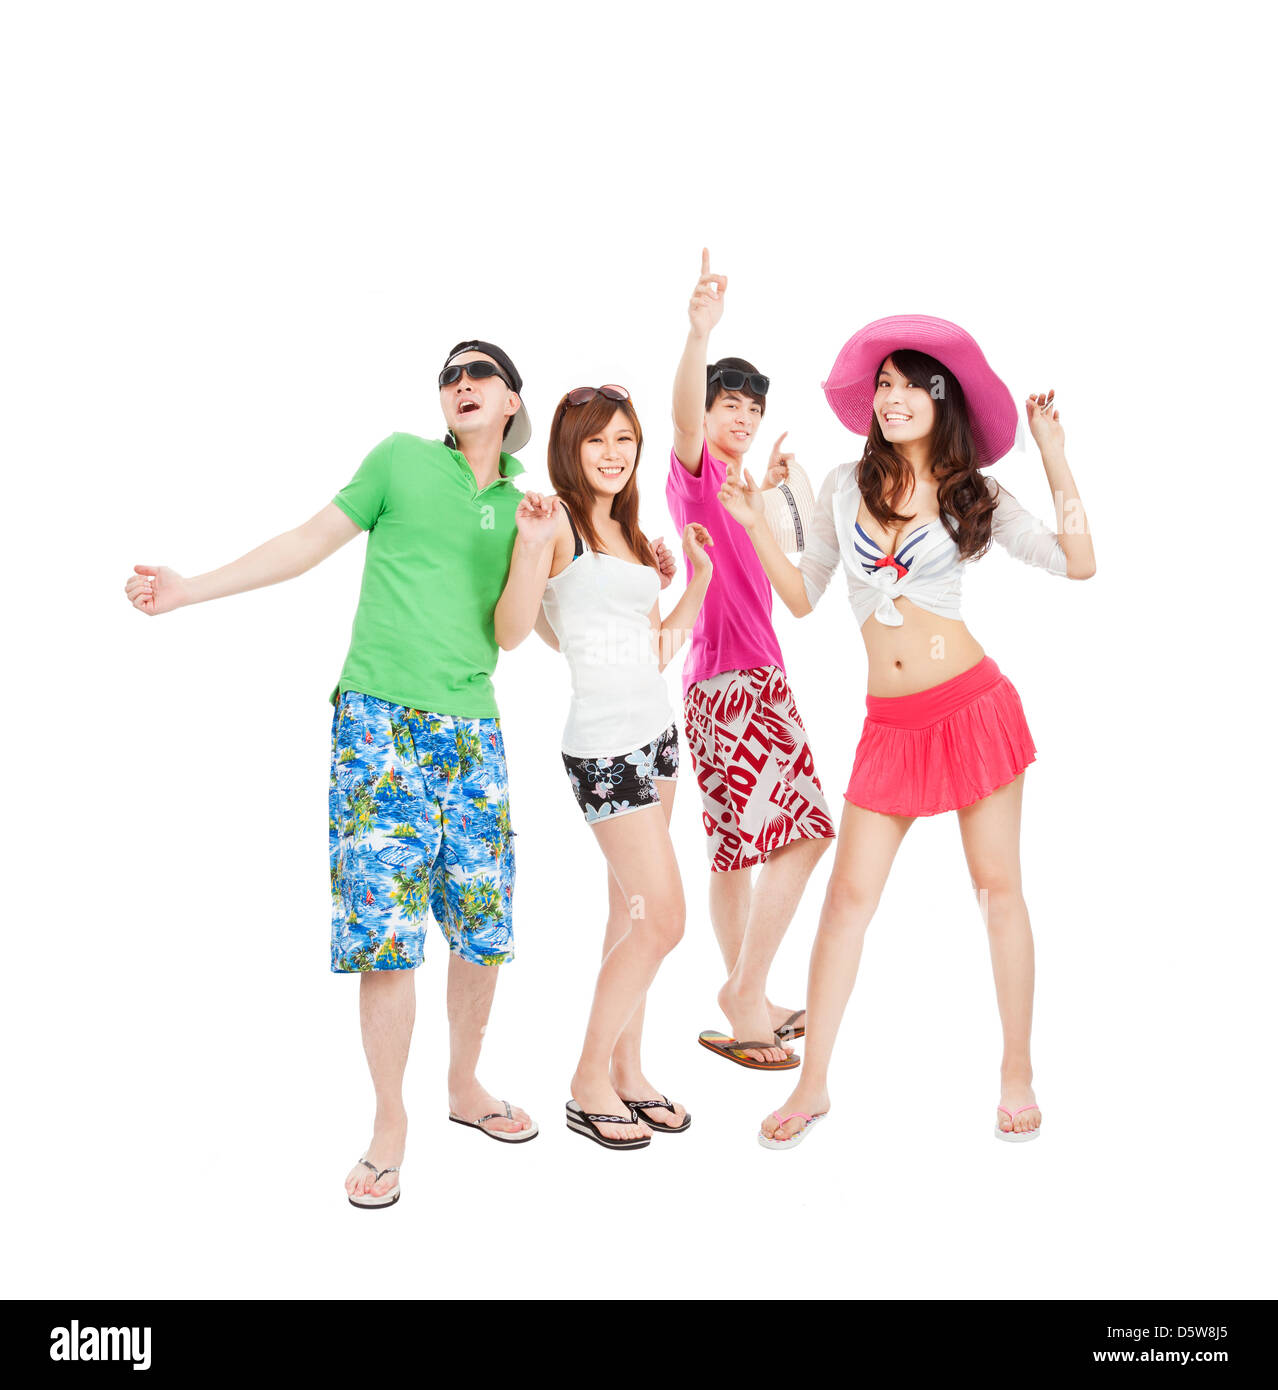 Group of summer young people dancing together - Stock Image